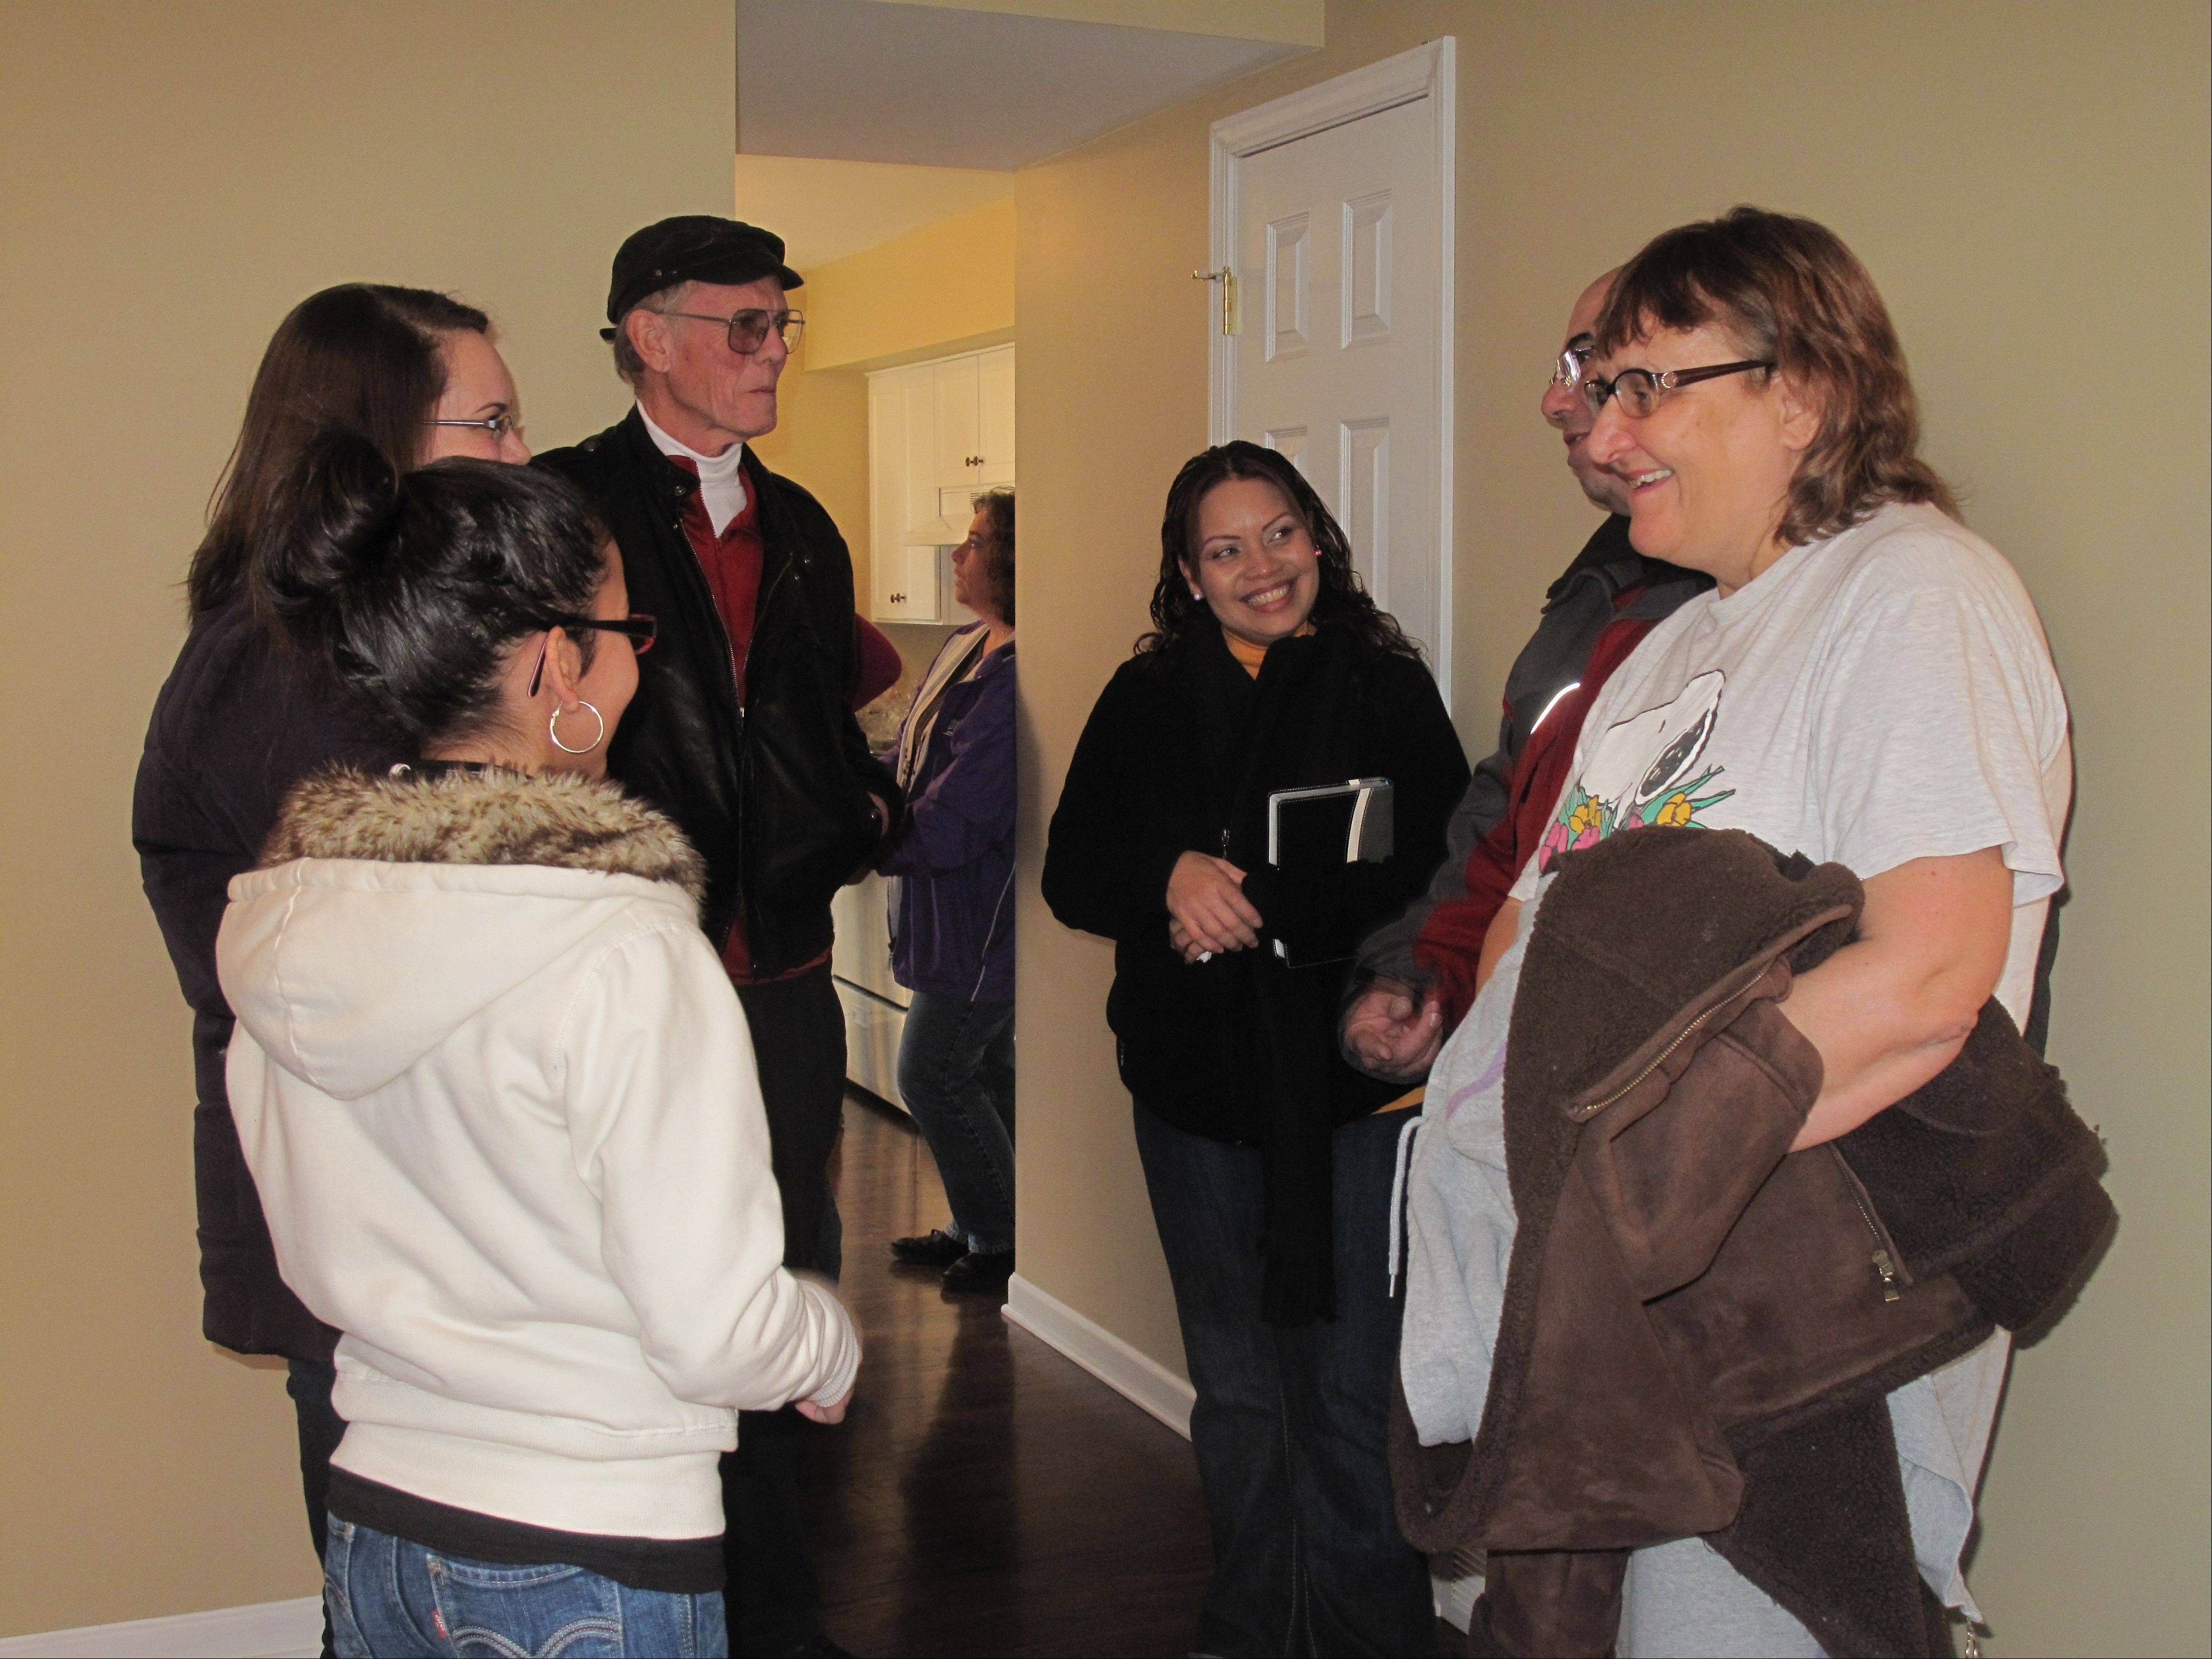 Enid Vargas, center, talks with Fox Valley Habitat for Humanity staff members and previous home recipients Saturday during a dedication ceremony at her new townhouse in North Aurora.